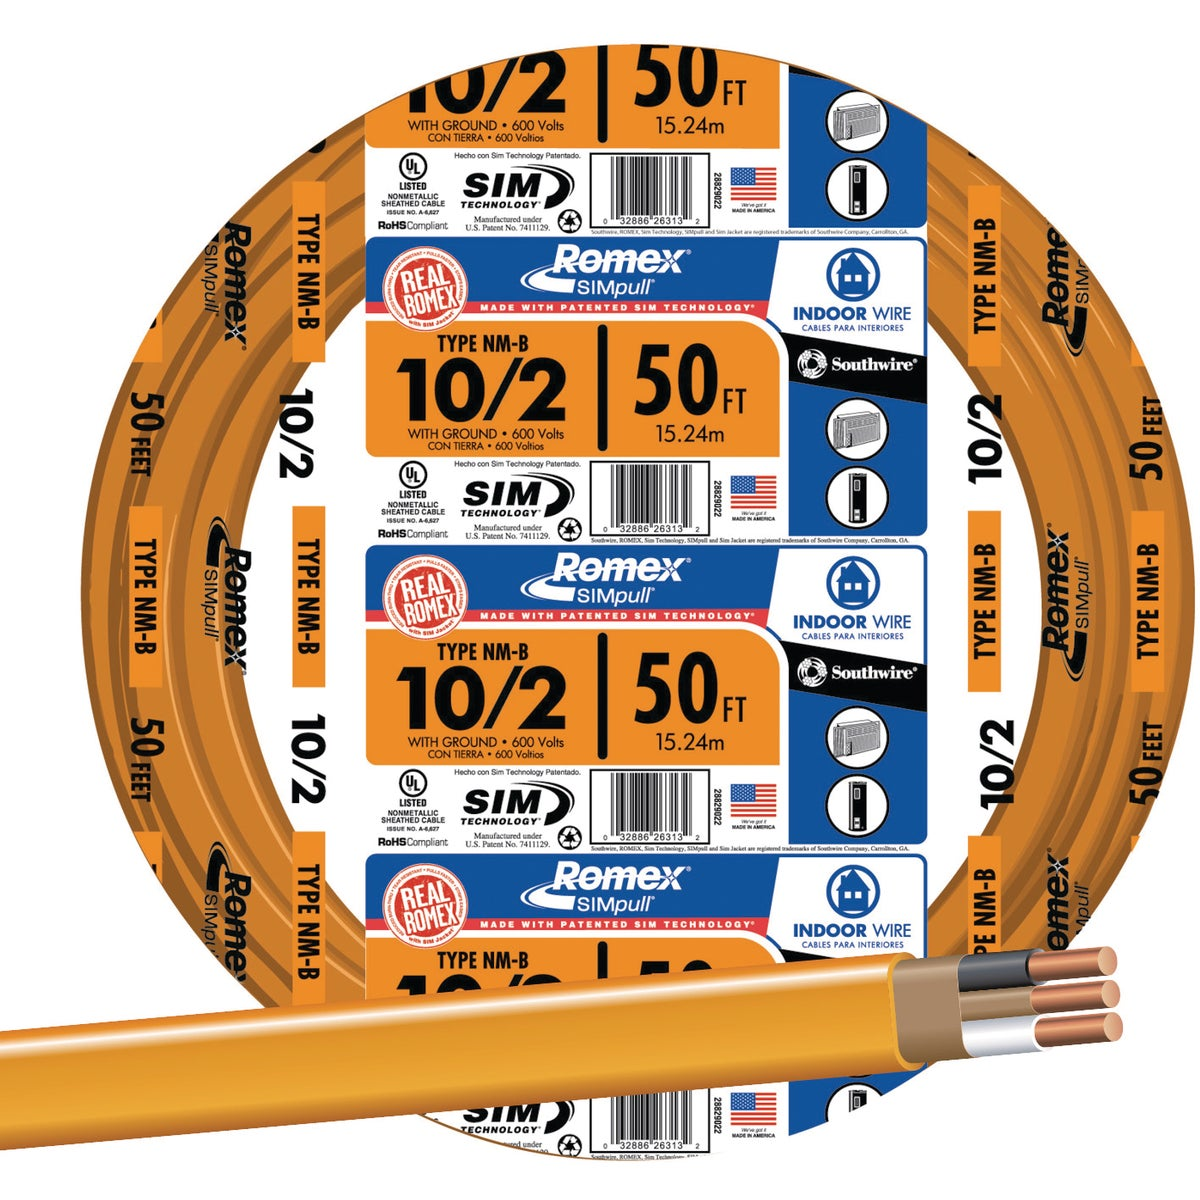 50' 10-2 NMW/G WIRE - 28829022 by Southwire Company